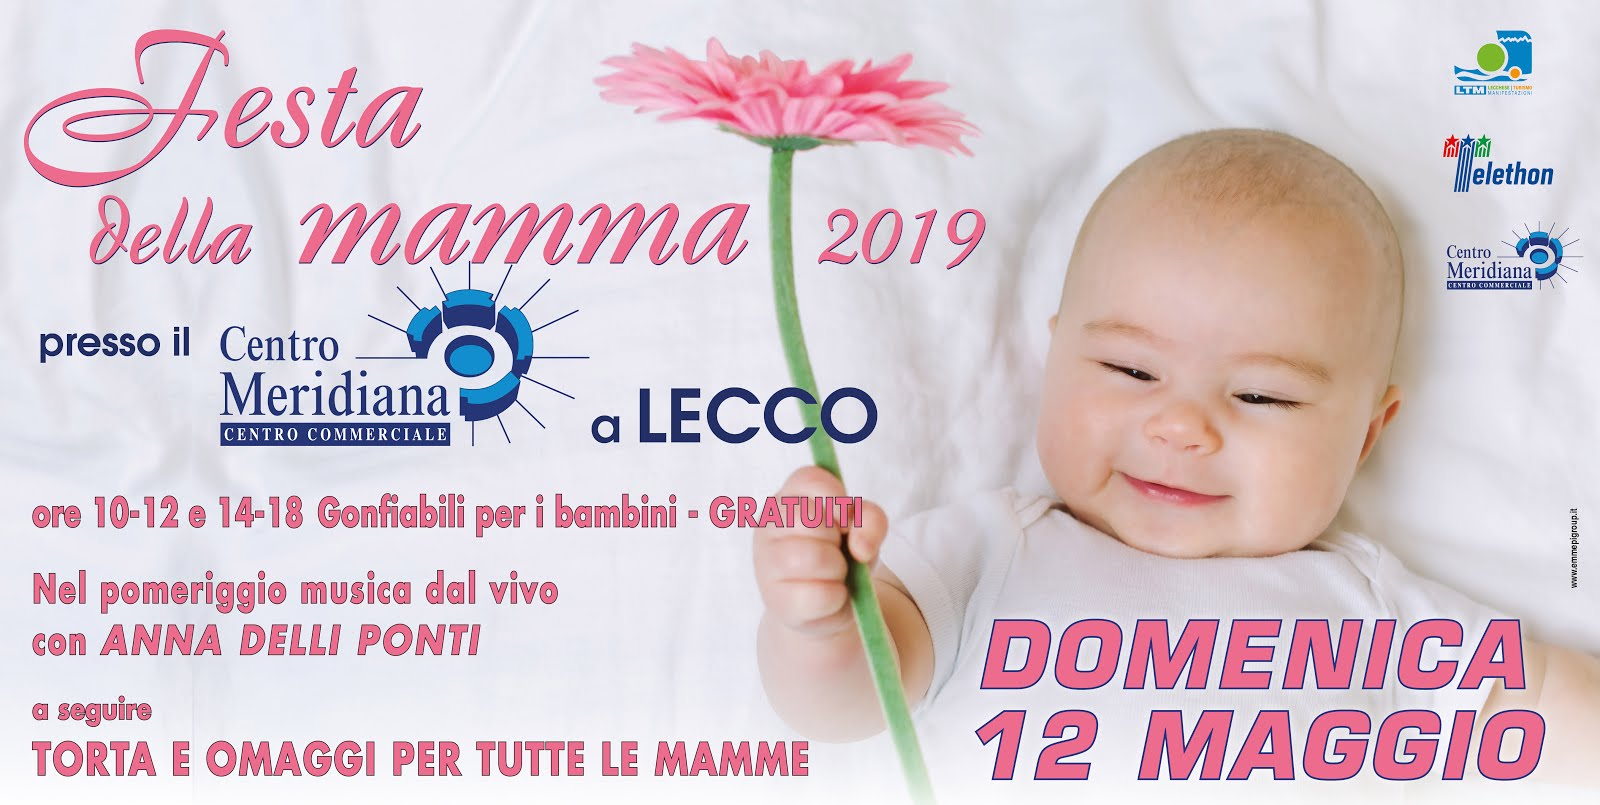 Festa della mamma